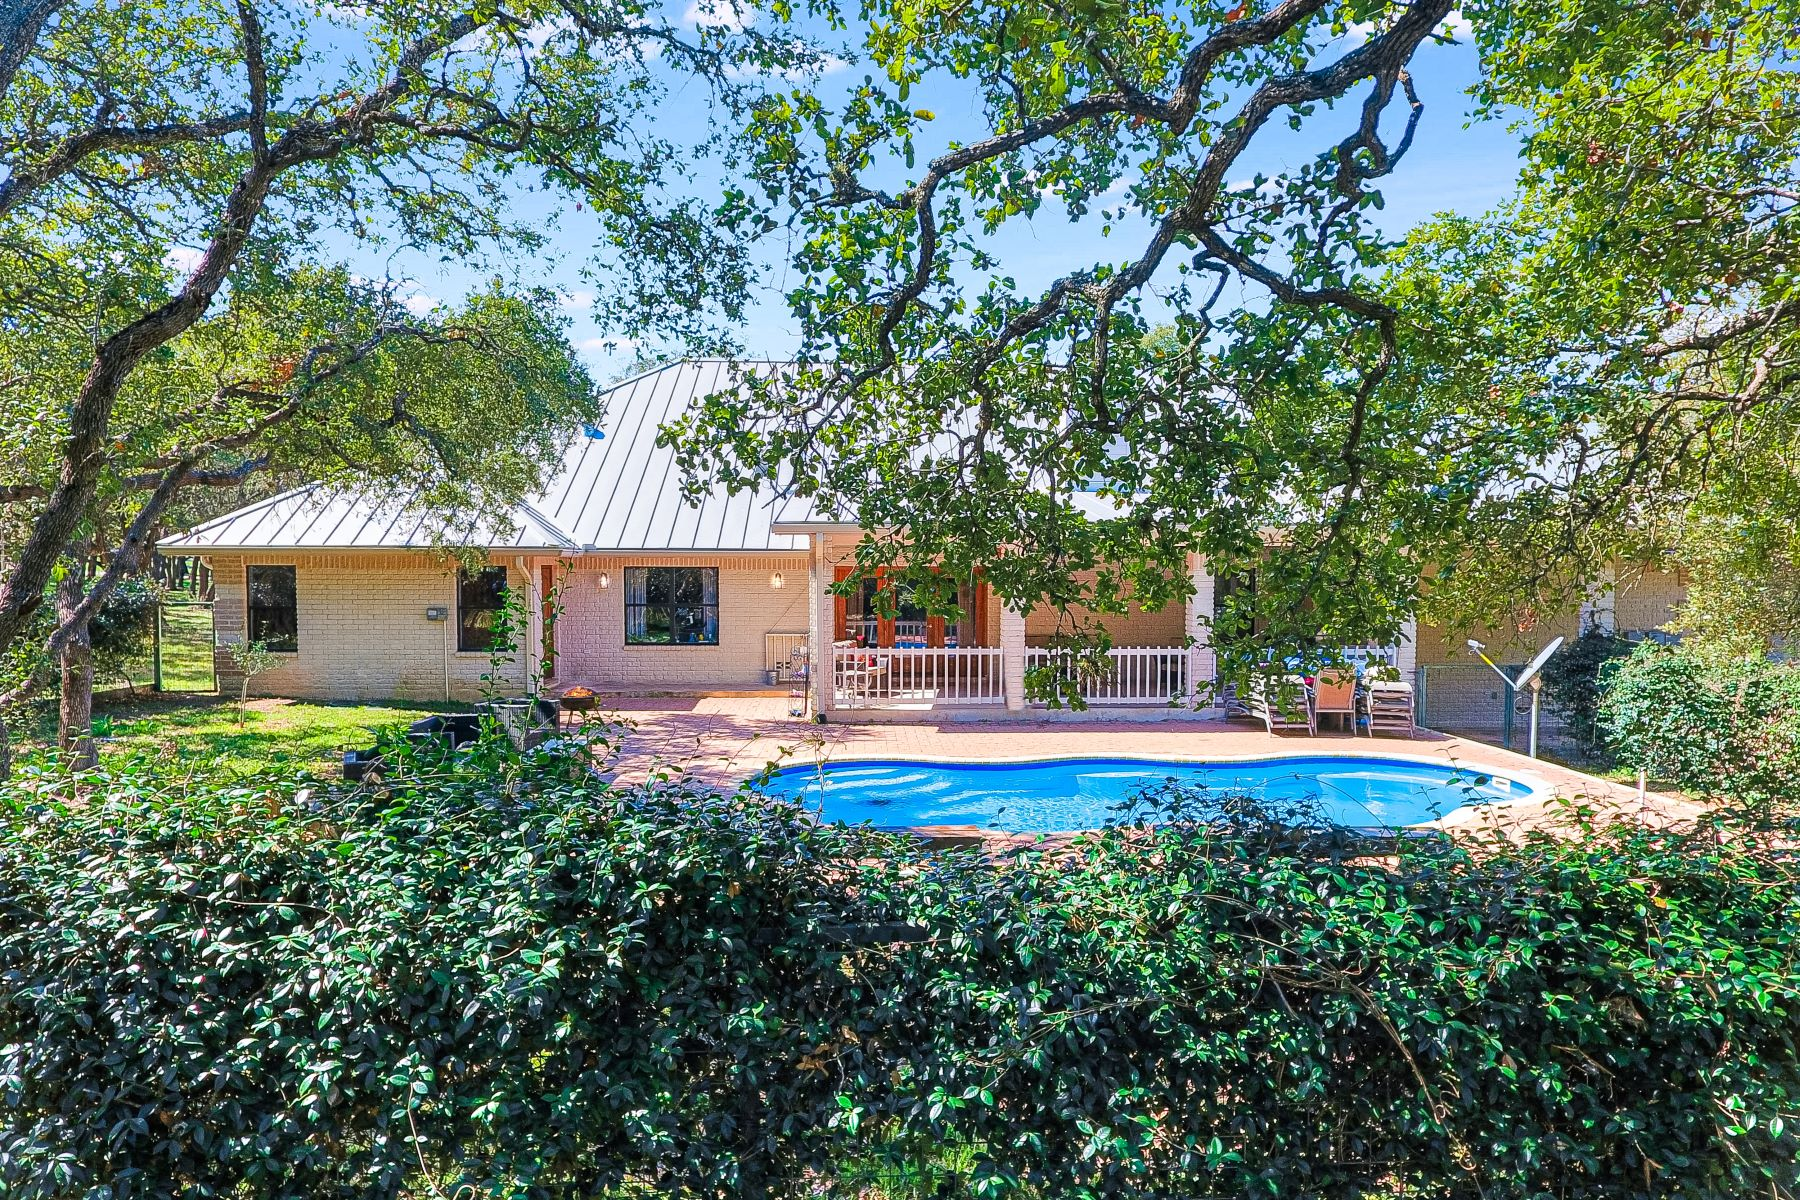 Single Family Homes for Sale at Three Acre Lot with Beautiful Oak Tree Surrounded Pool and Guest House 23970 Cavern Oak Garden Ridge, Texas 78266 United States